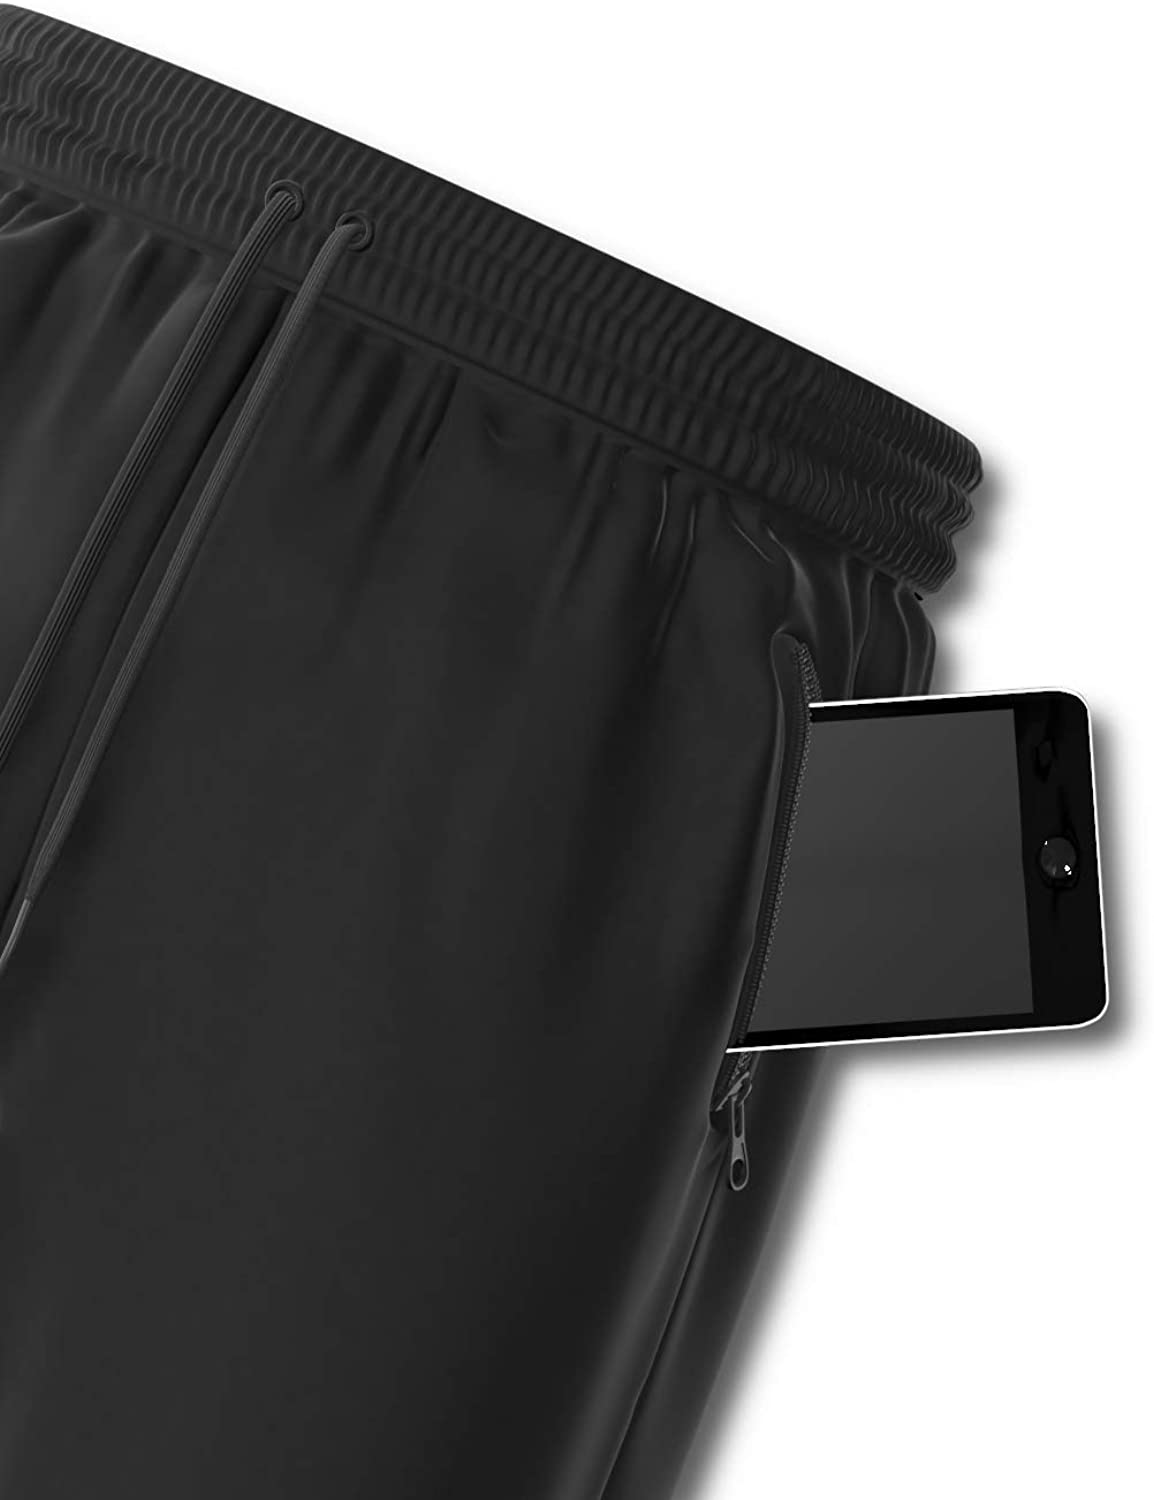 Comfort 360/° Running /& Workout Gym Shorts with Zipper Pockets Men/'s Premium Athletic Sports